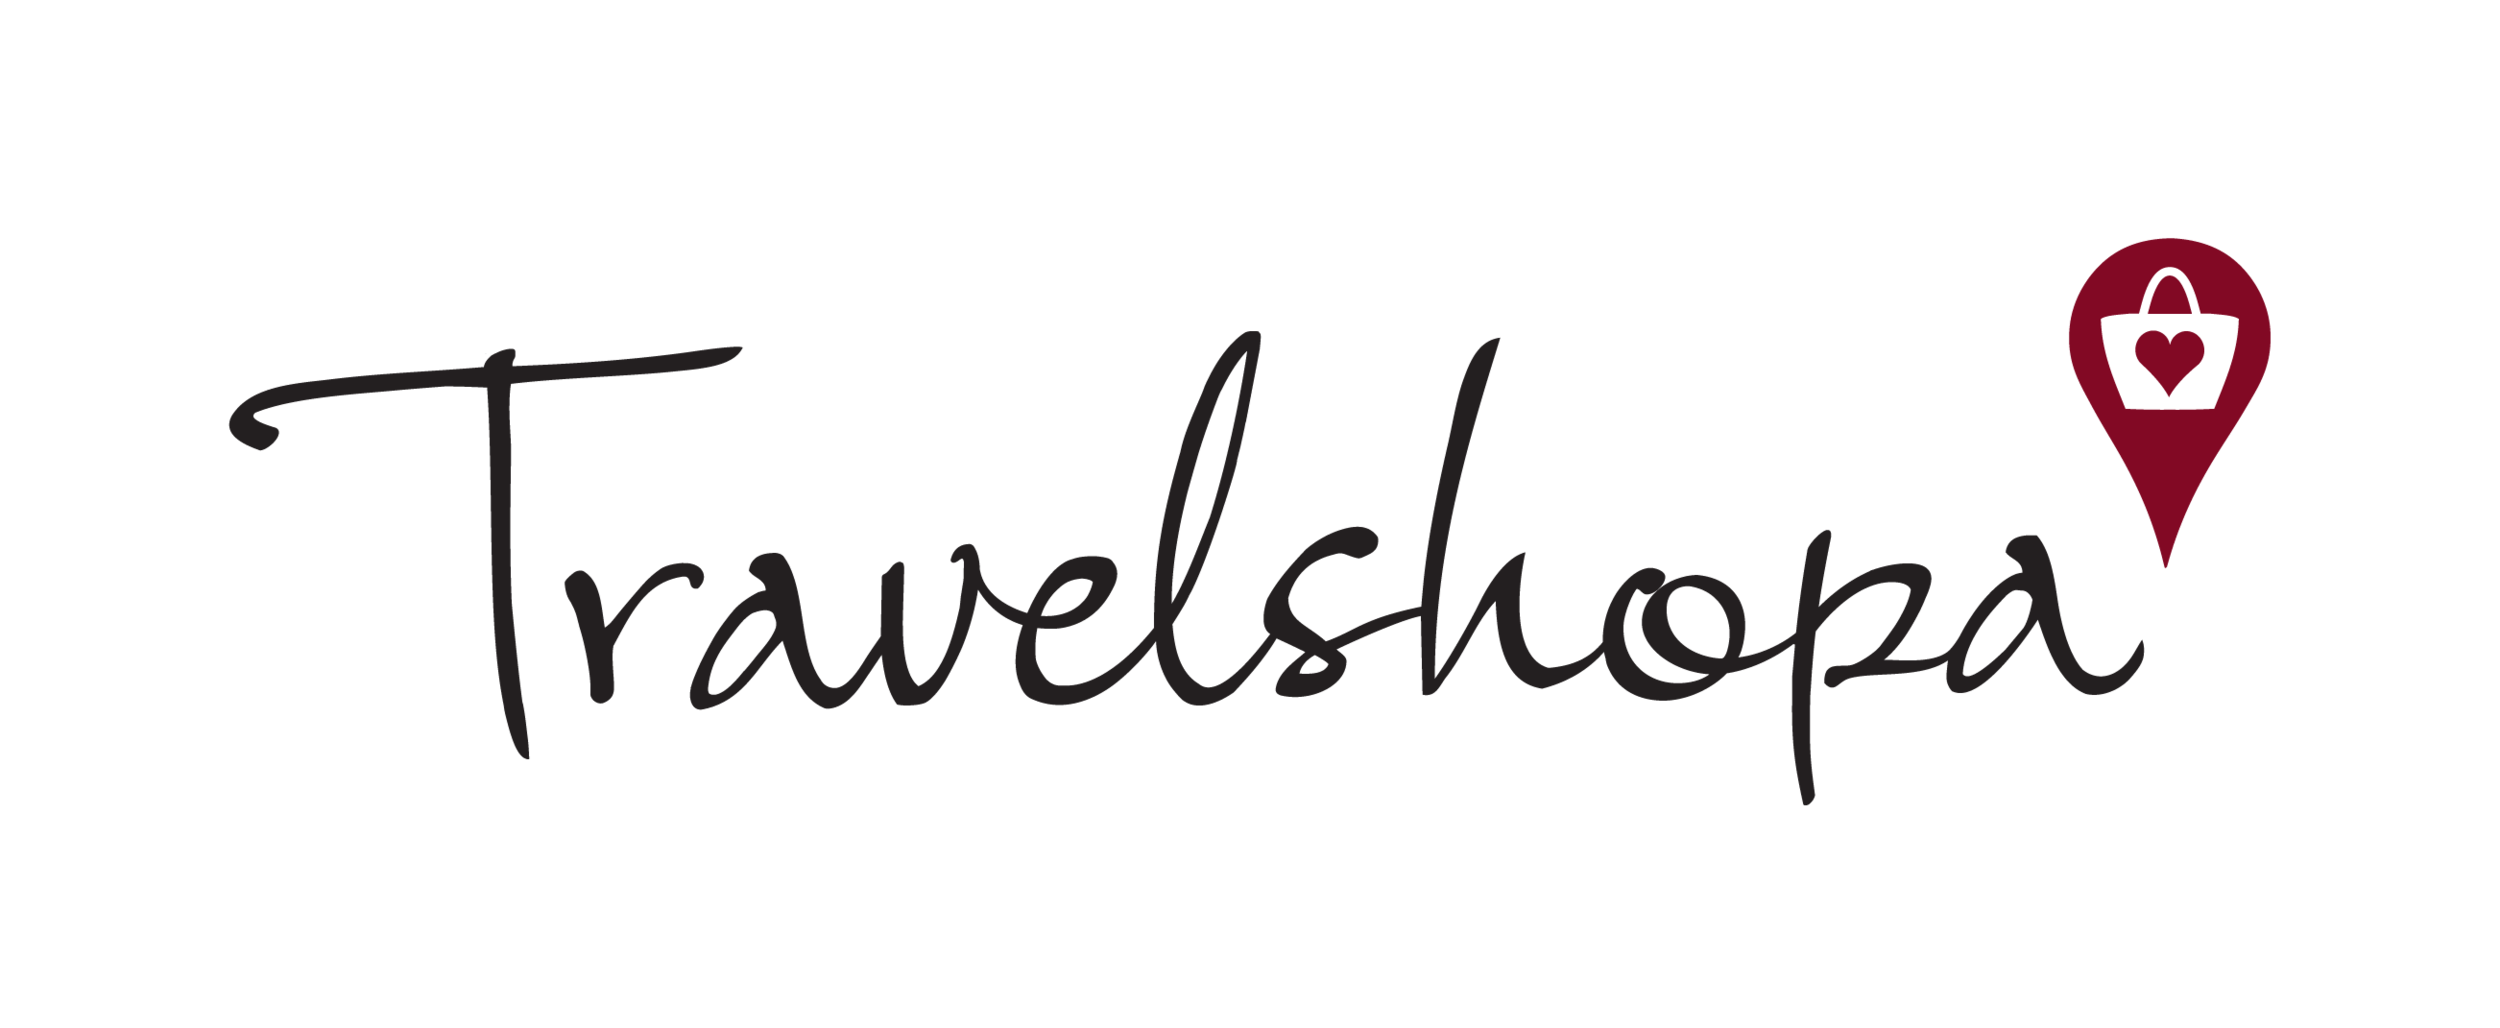 Travelshopa CTF Curated Melbourne